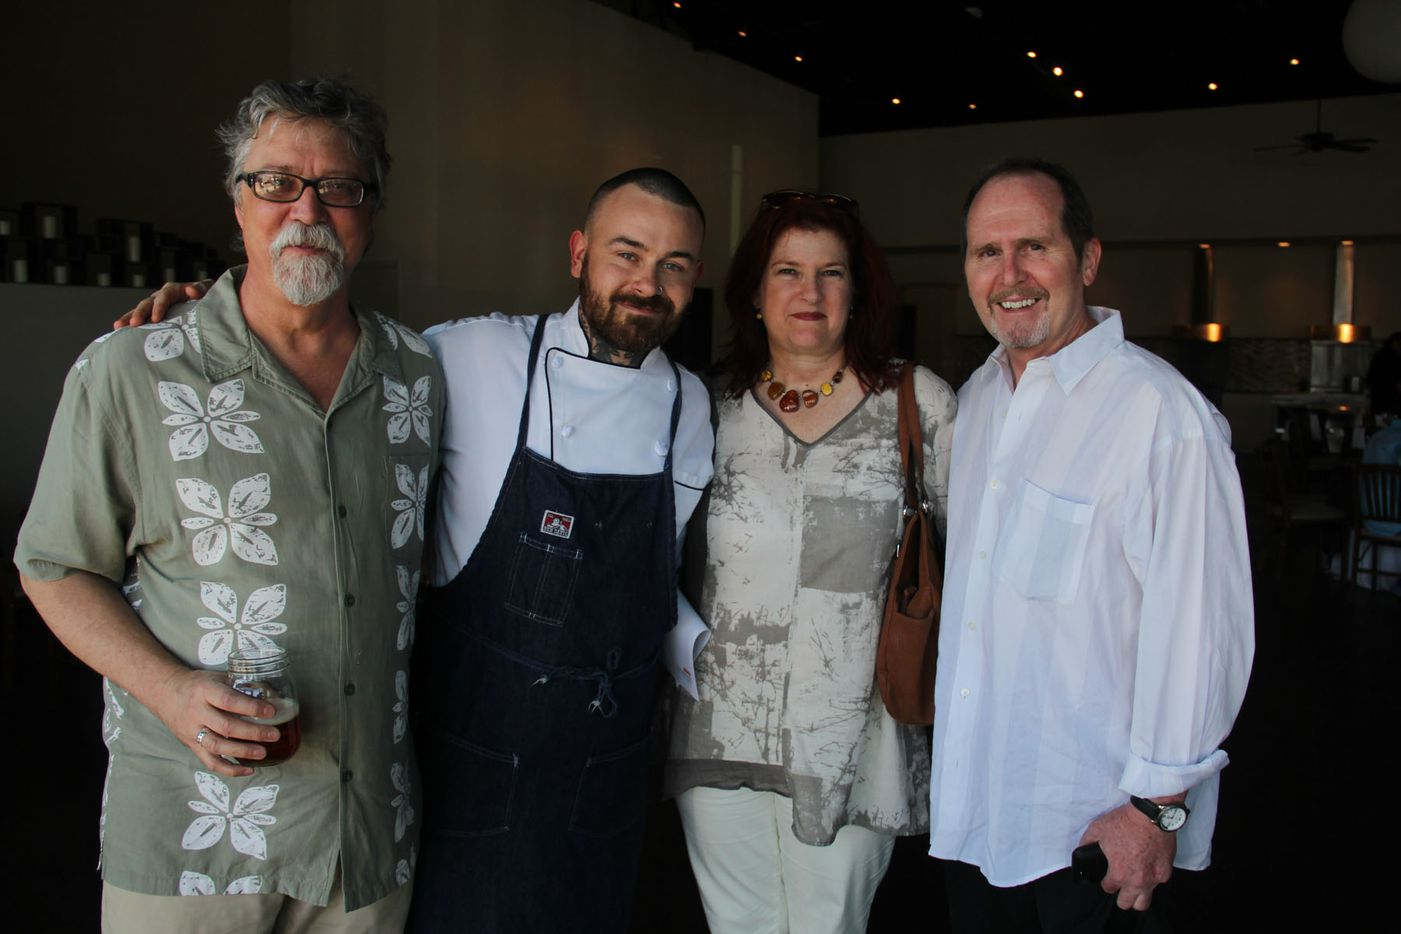 Chef Justin Box with guests at his summer pop up dinner Summer Shenanigans at 3015 in Trinity Groves on July 26,2015.